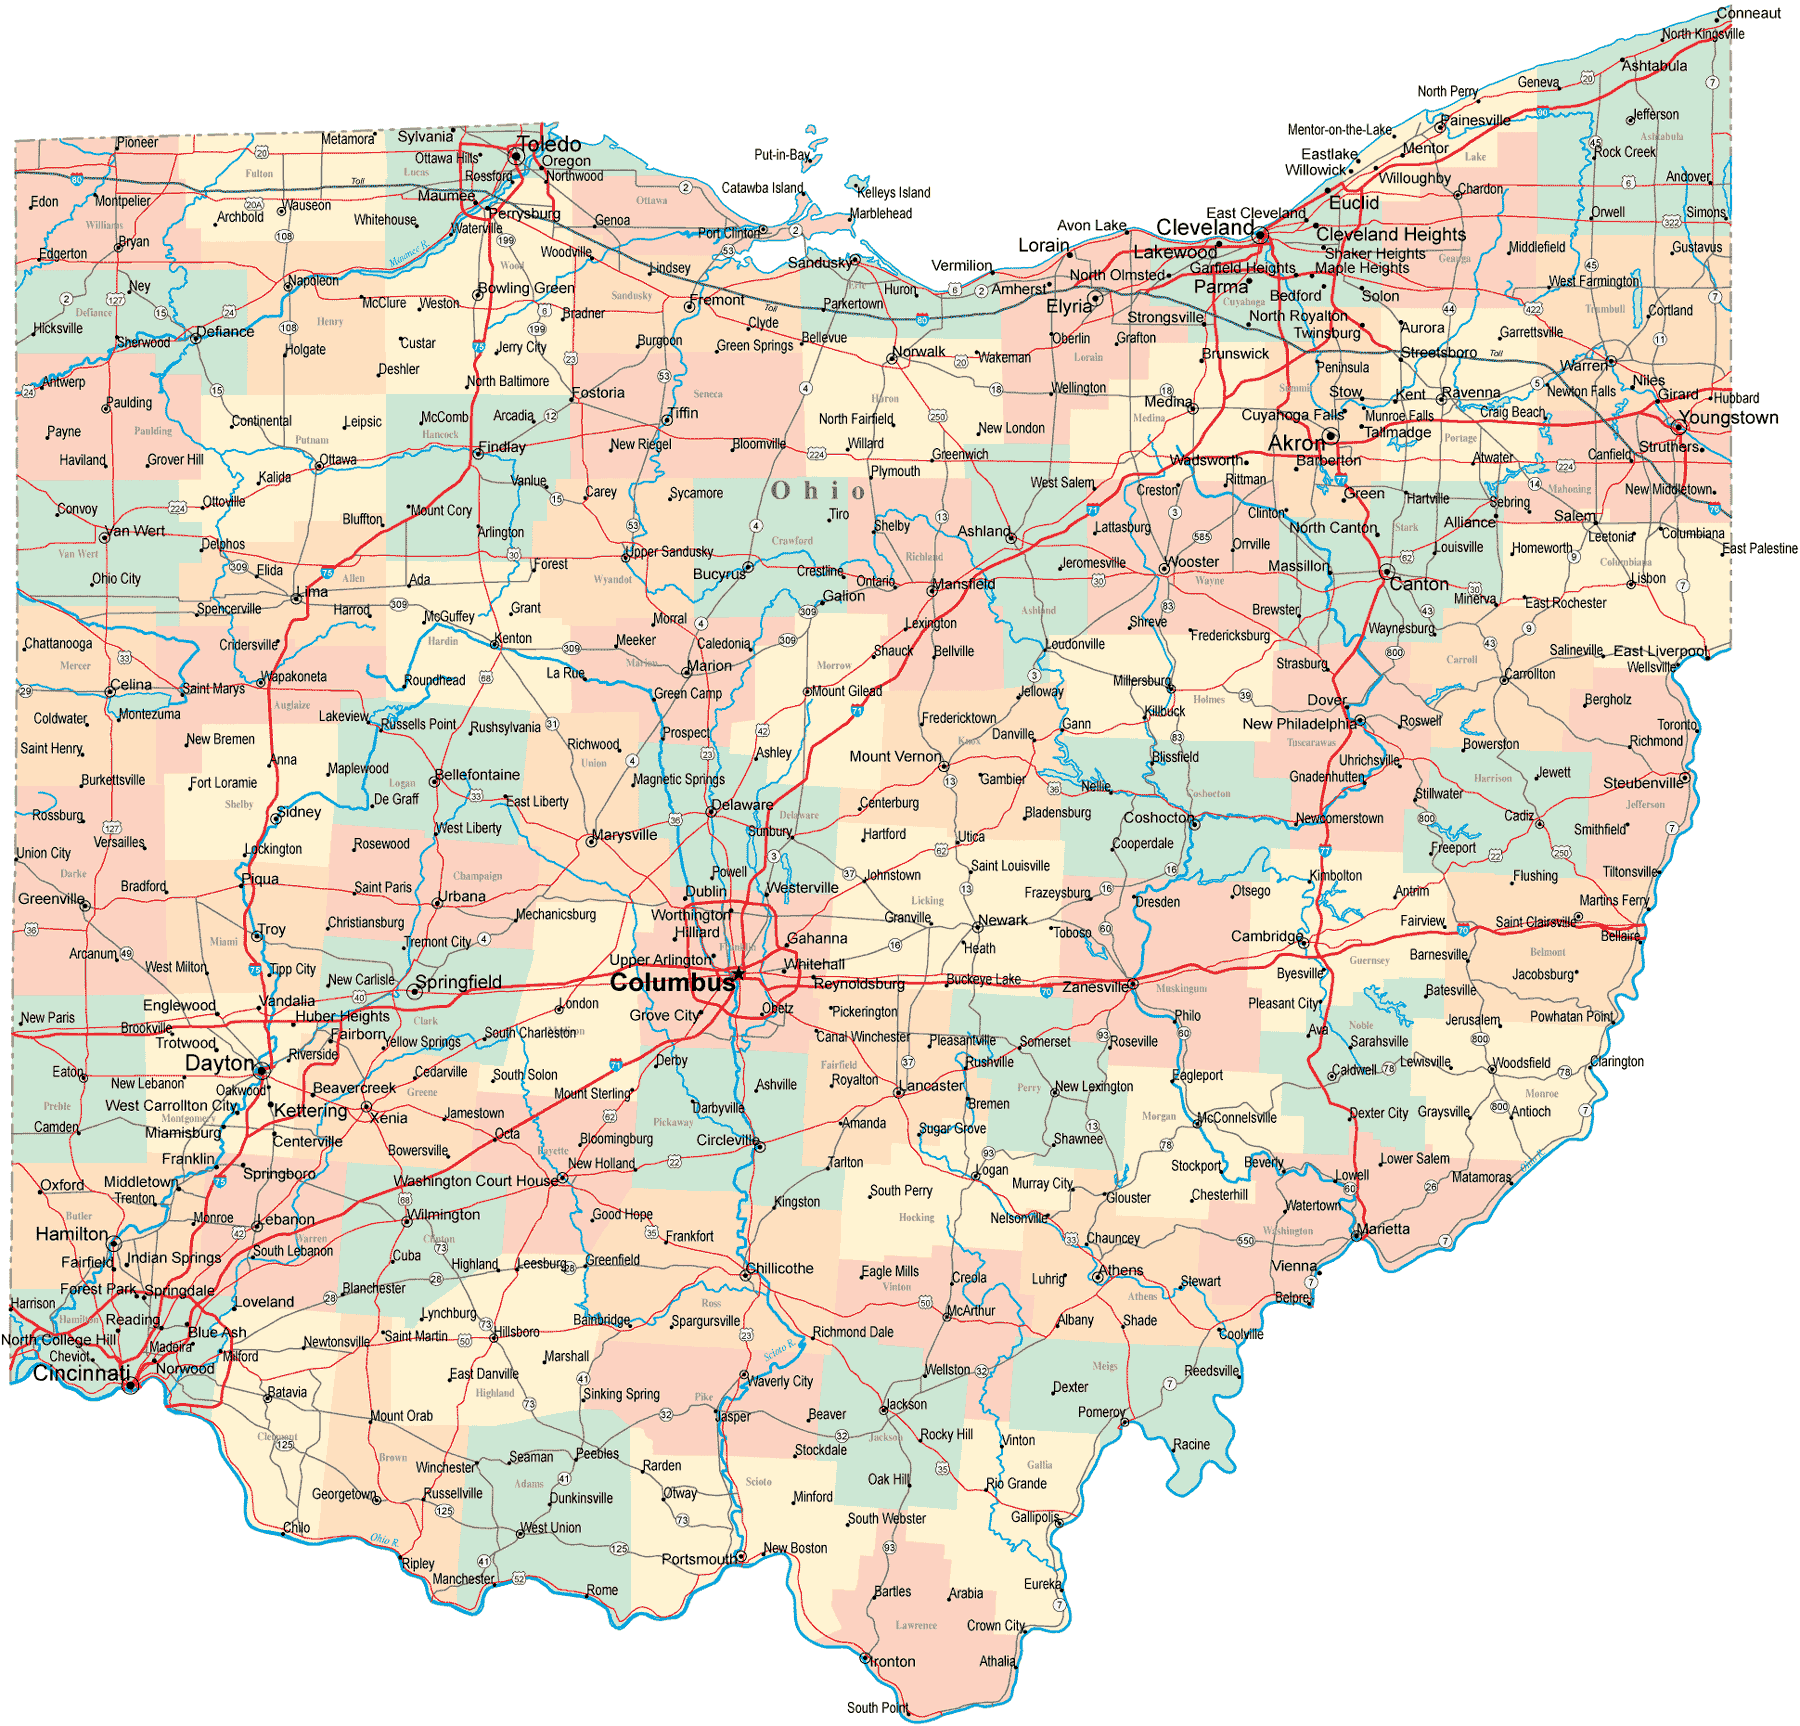 Ohio Map With Cities And Towns Ohio Map • Mapsof.net Ohio Map With Cities And Towns